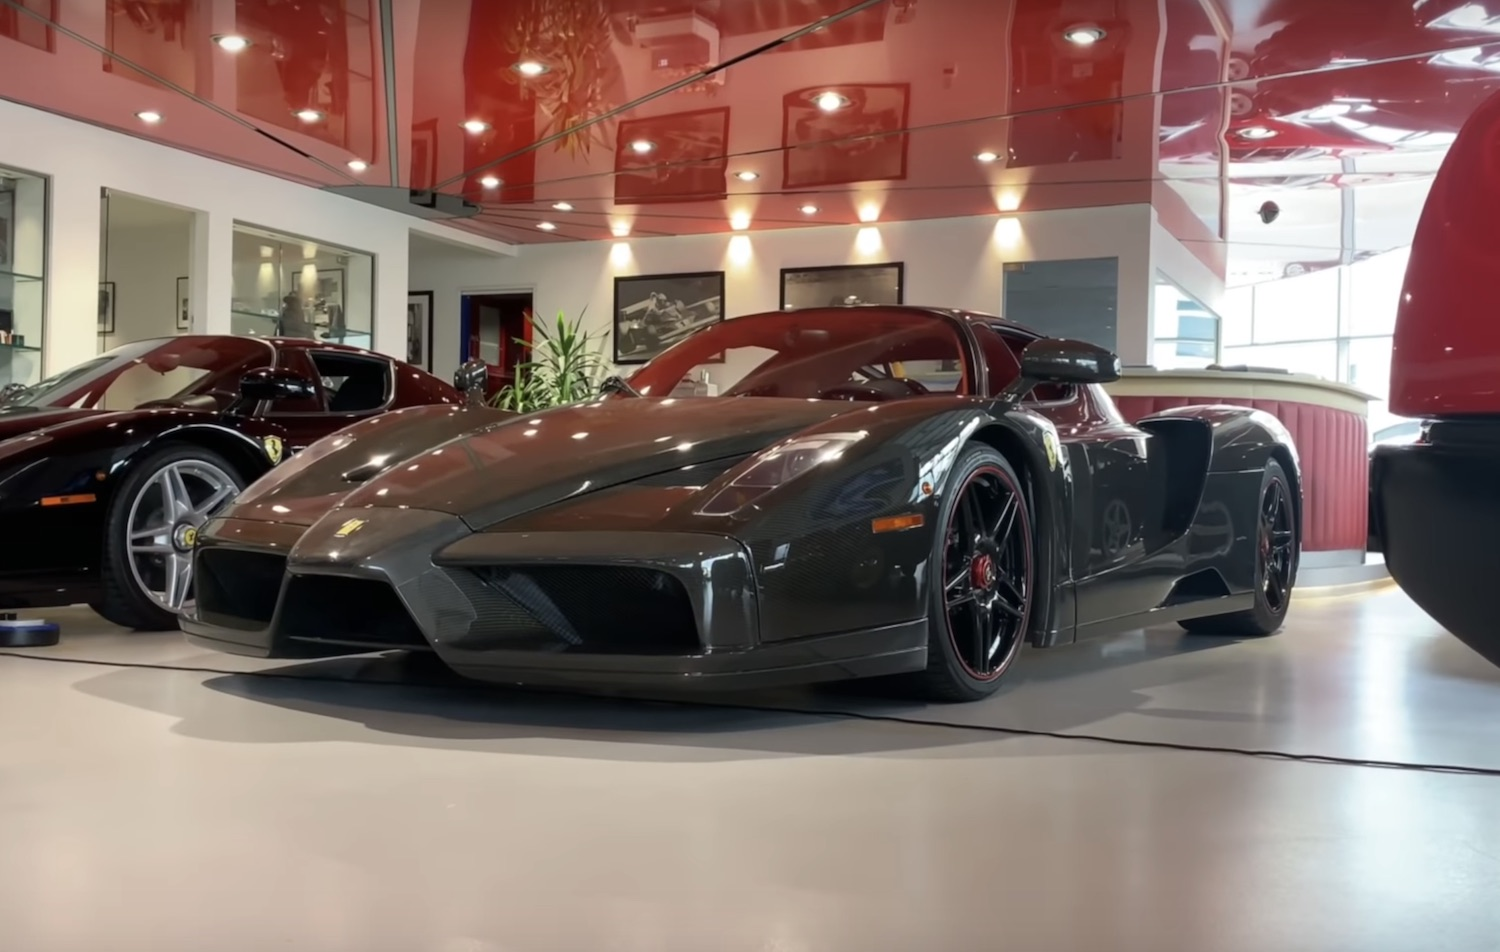 Supercar Dealership Near Me >> Feast Your Eyes On This London Dealership S Amazing Supercar